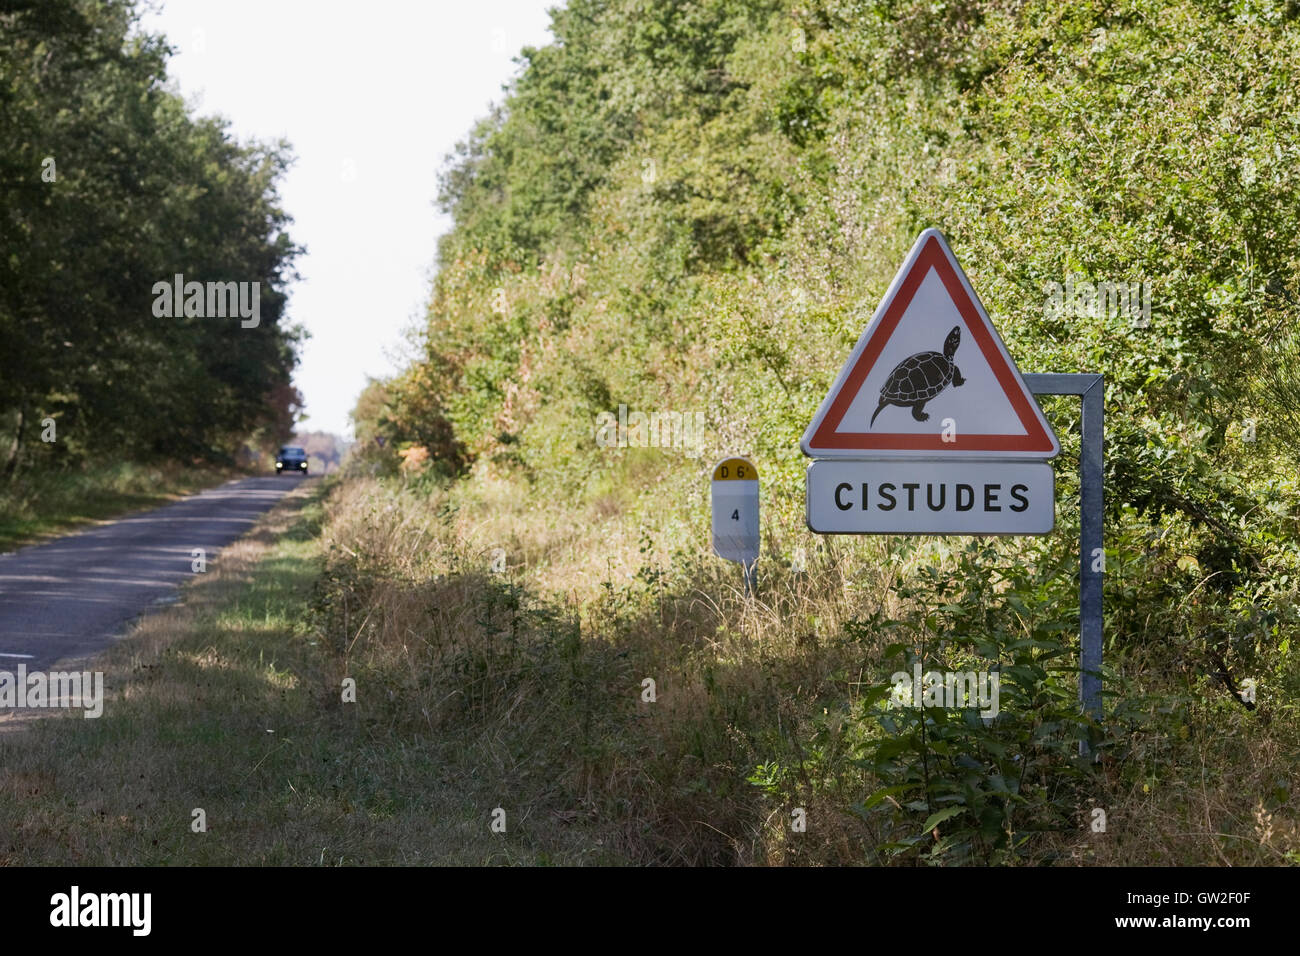 Traffic sign warning that cistudes maybe crossing the road. - Stock Image